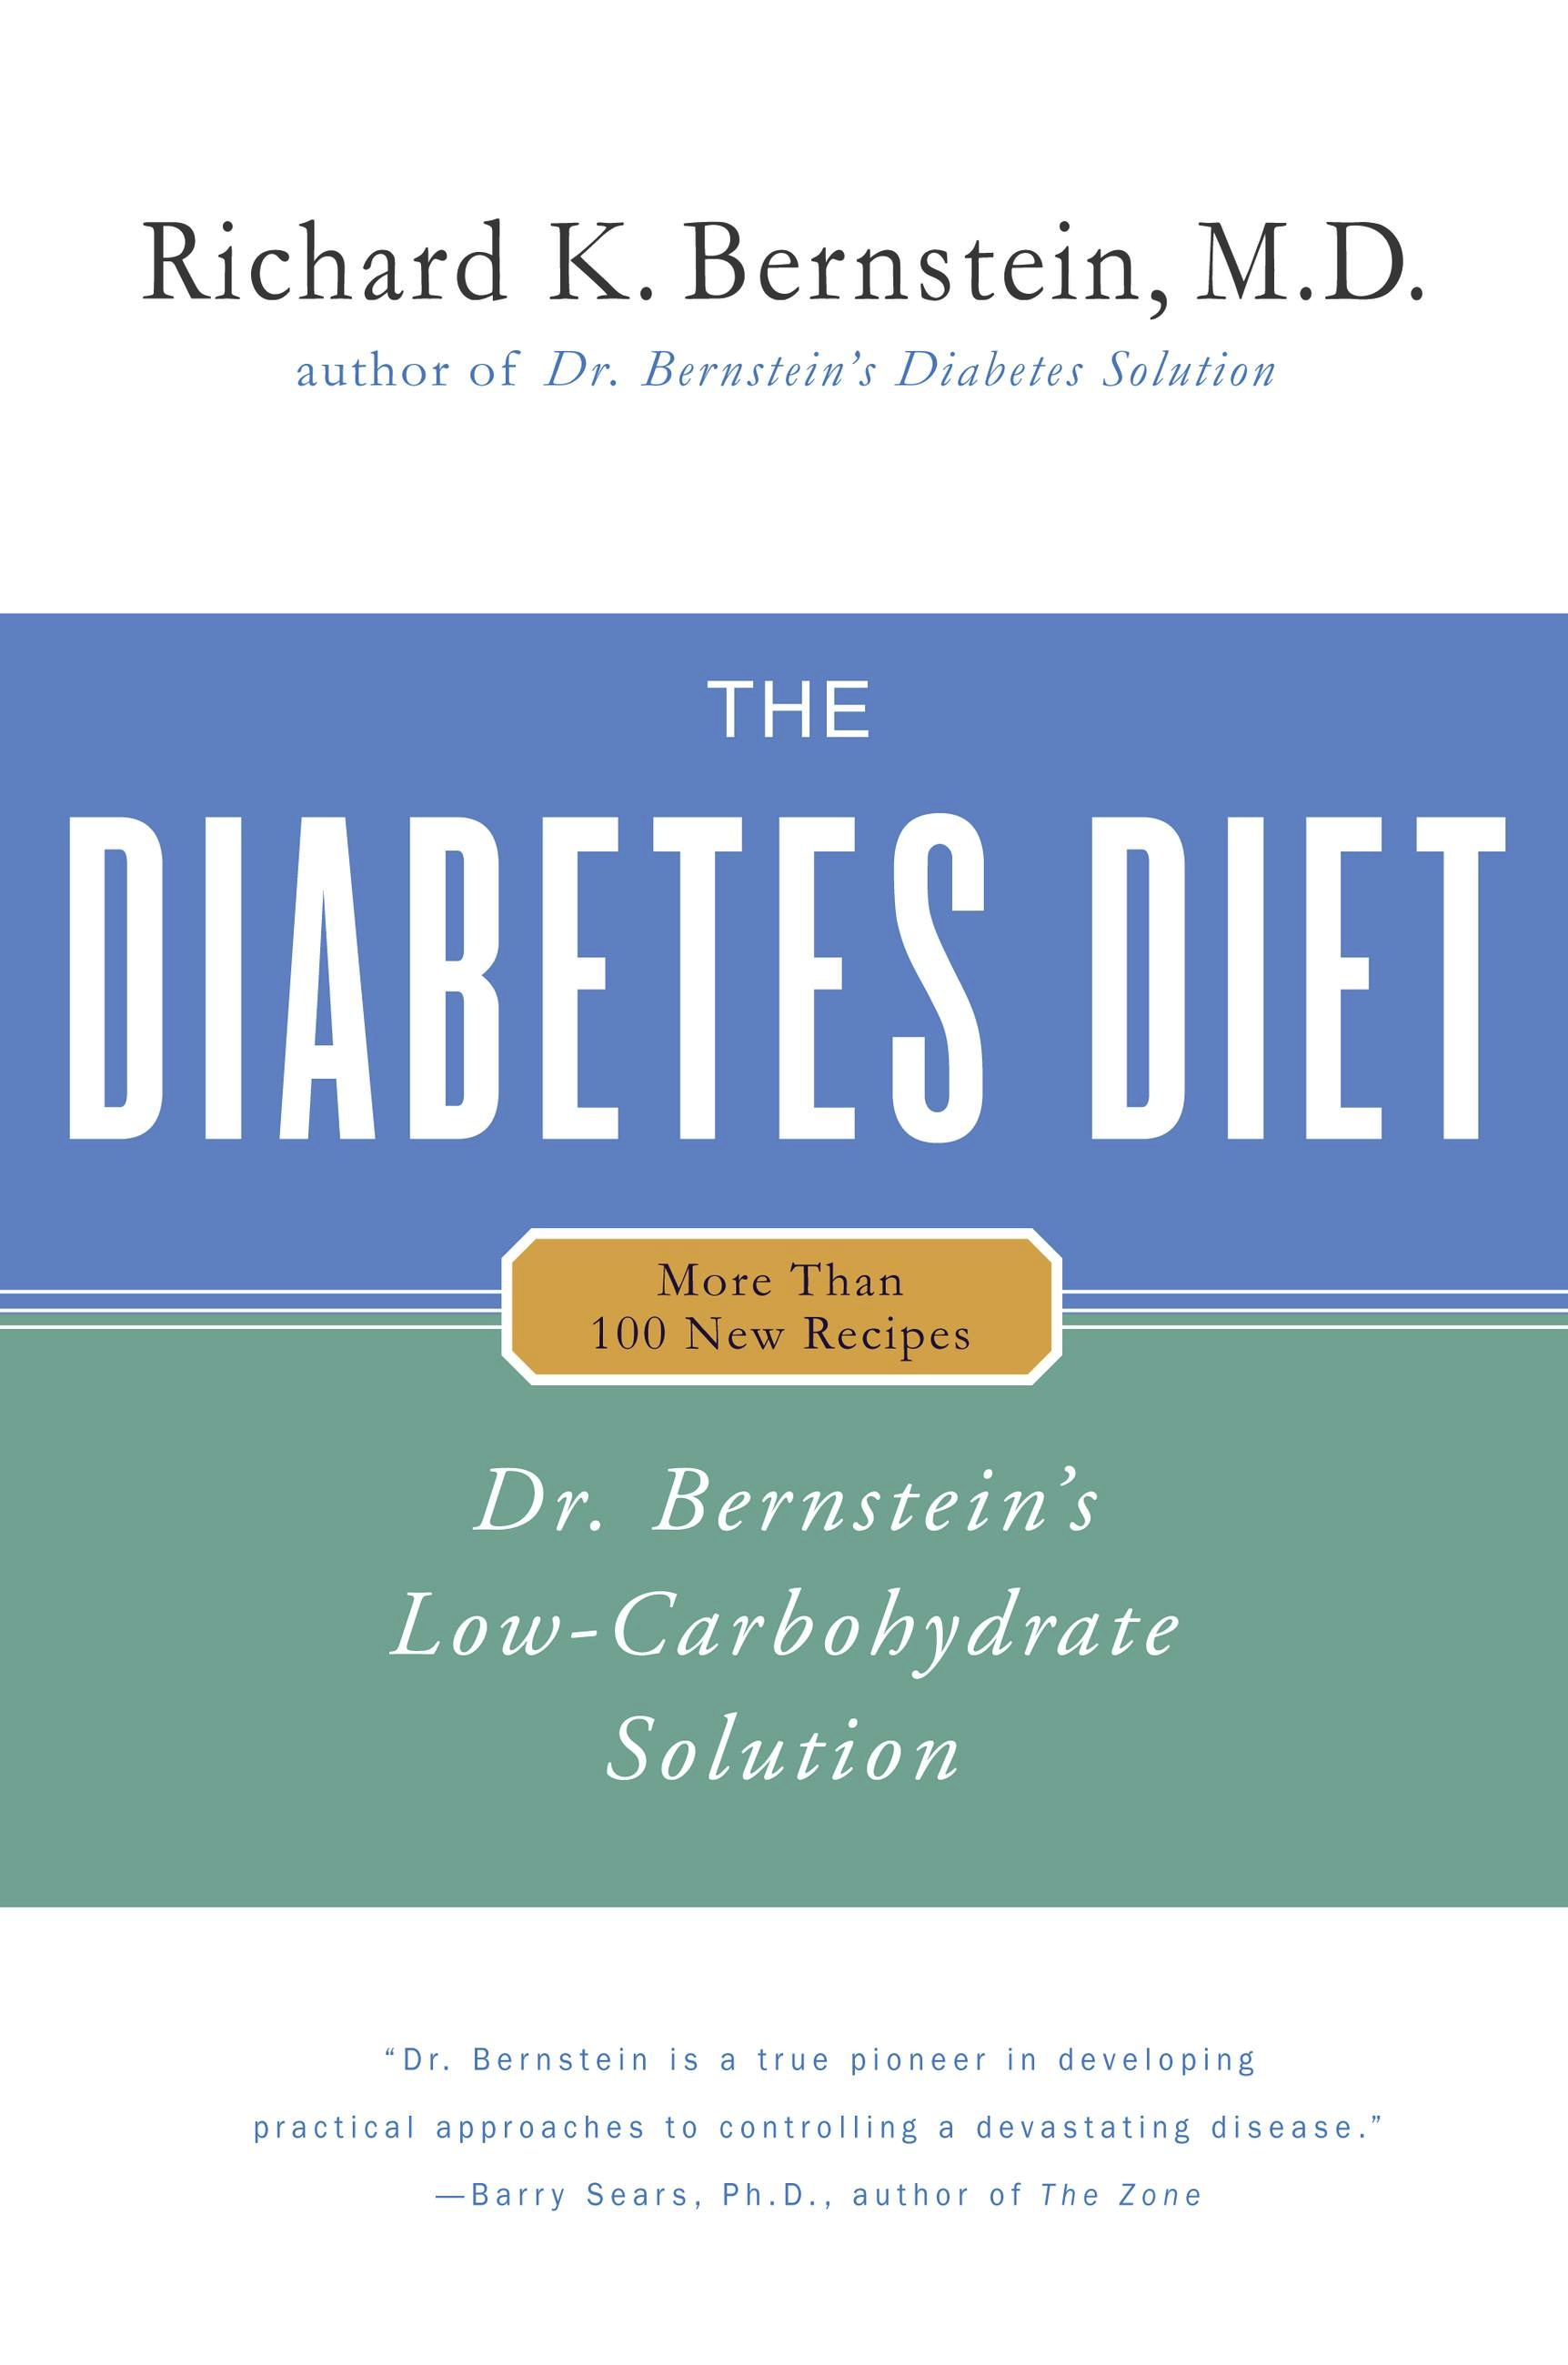 Diabetes Diet, The